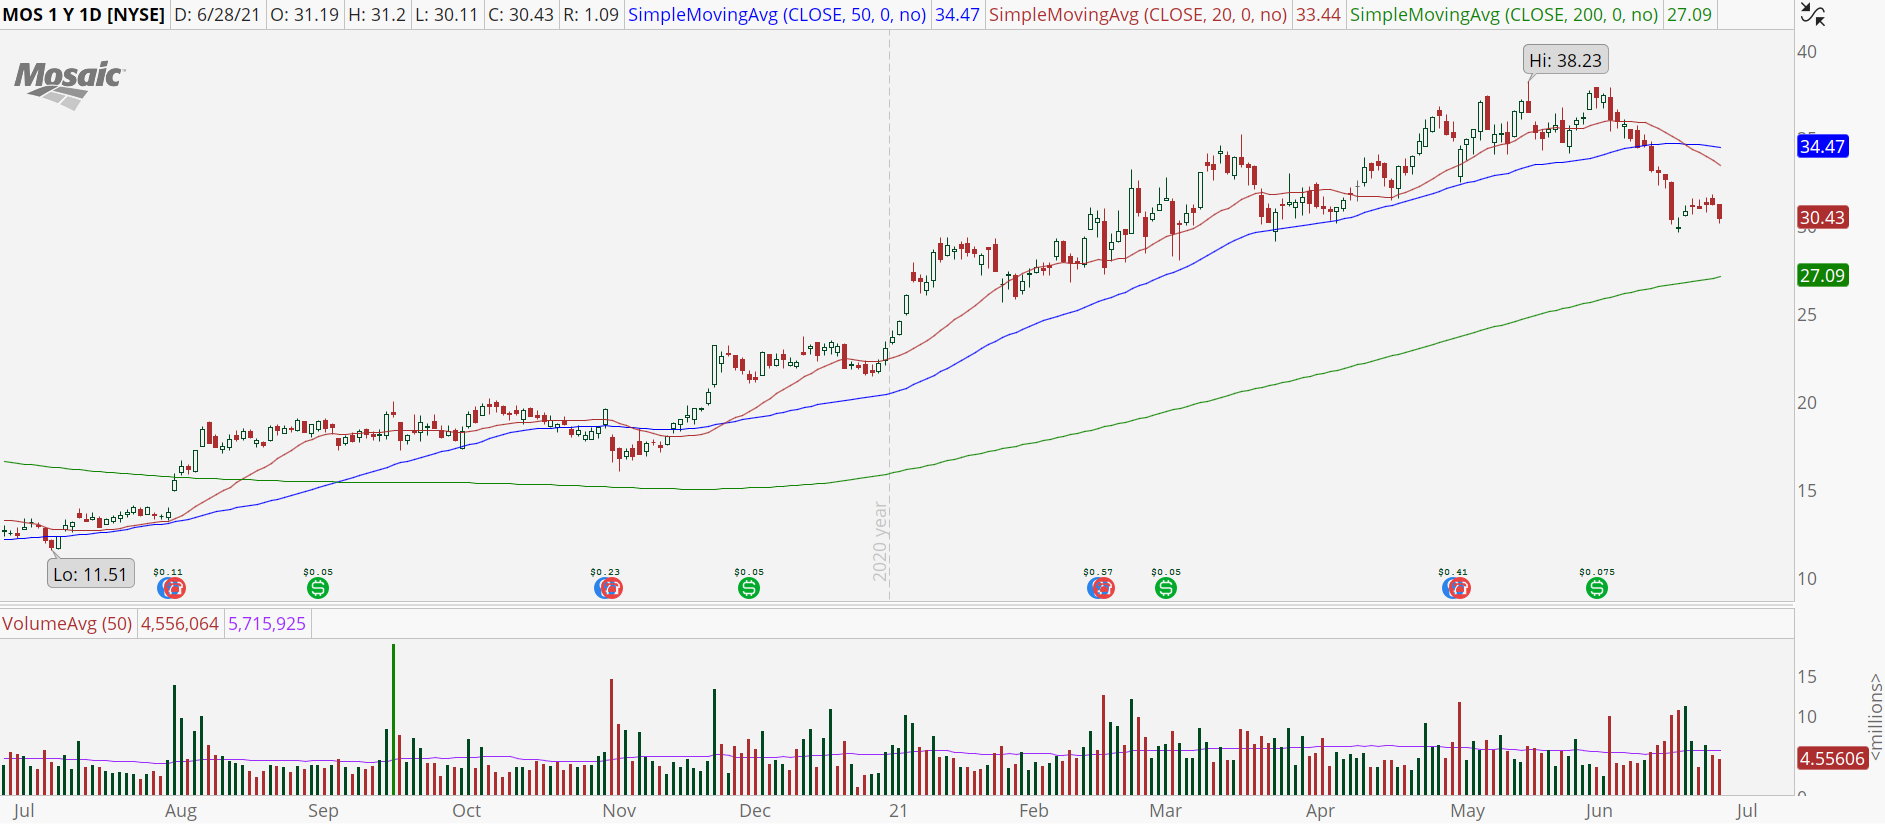 Mosaic (MOS) stock chart with bear retracement setup